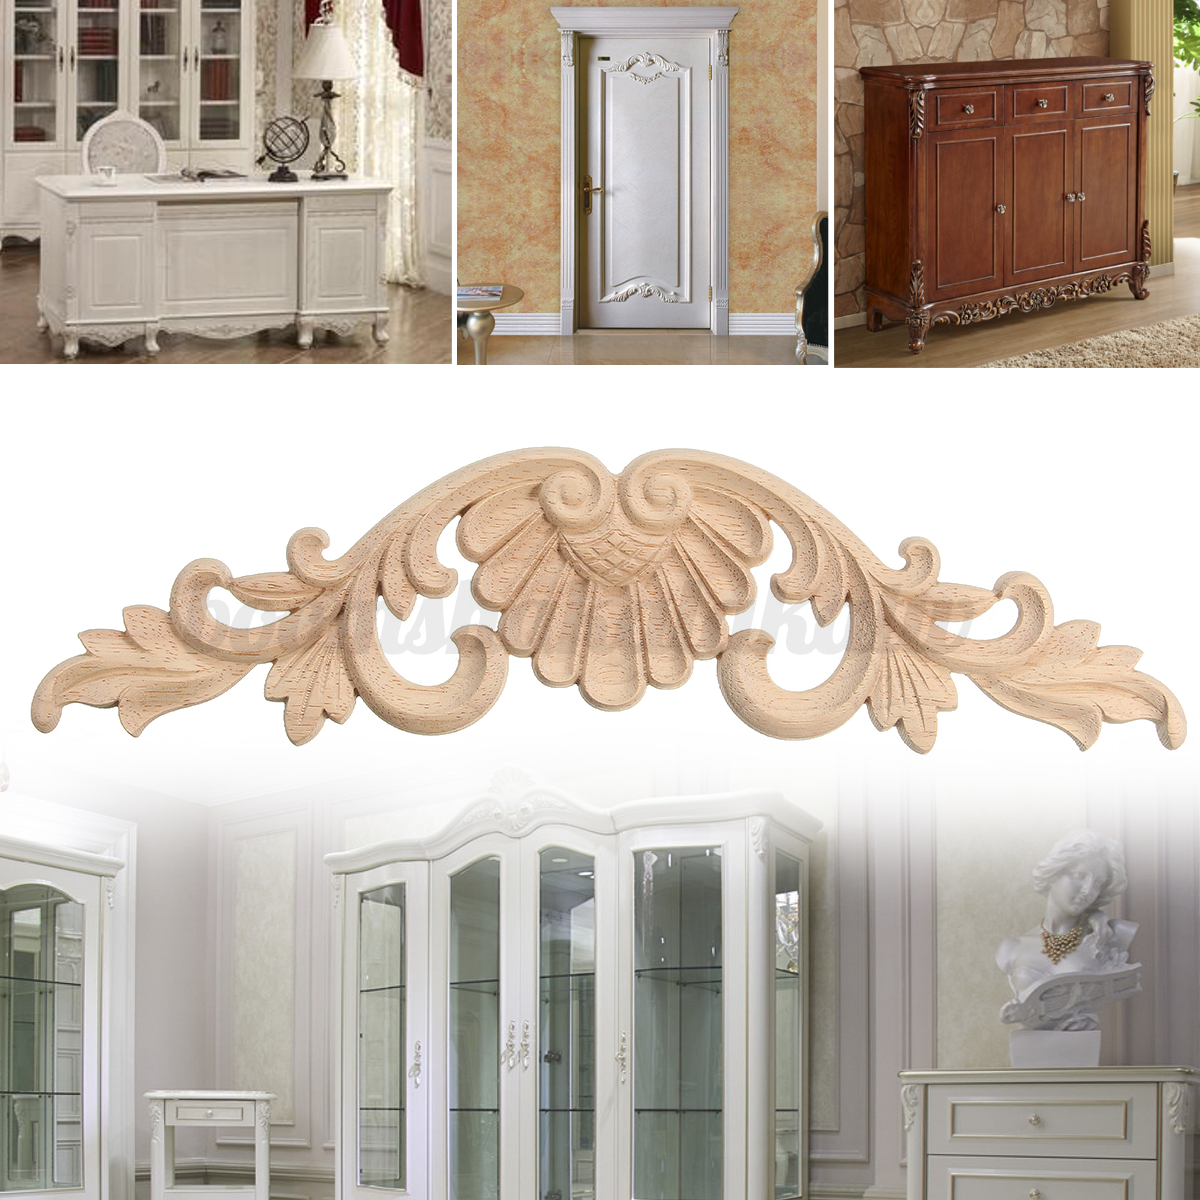 Modern wood carved corner onlay applique carving decor for Applique furniture decoration